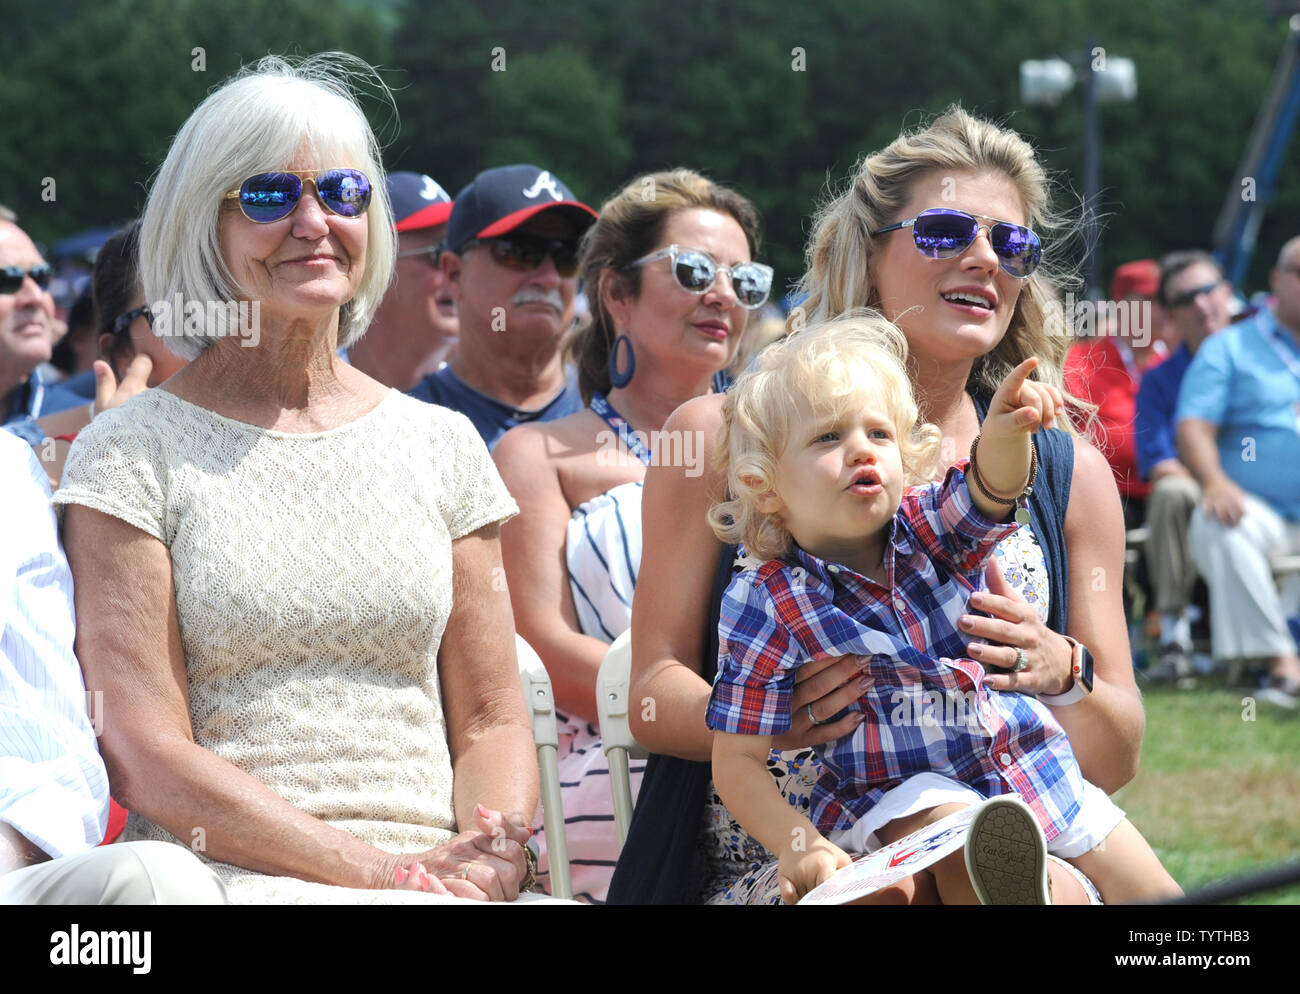 Chipper Jones Wife Taylor and his Mom attend Chipper Jones induction speech at  Baseball Hall of Fame at the Clark Sports Center in Cooperstown, NY on July 29, 2018.  A record 60 Hall of Famers are scheduled to be in Central New York to honor Vladimir Guerrero, Trevor Hoffman, Chipper Jones, Jack Morris, Jim Thome and Alan Trammell at the National Baseball Hall of Fame and Museum during Hall of Fame Weekend on July 27-30.     Photo by George Napolitano/UPI                                                                                                   . - Stock Image